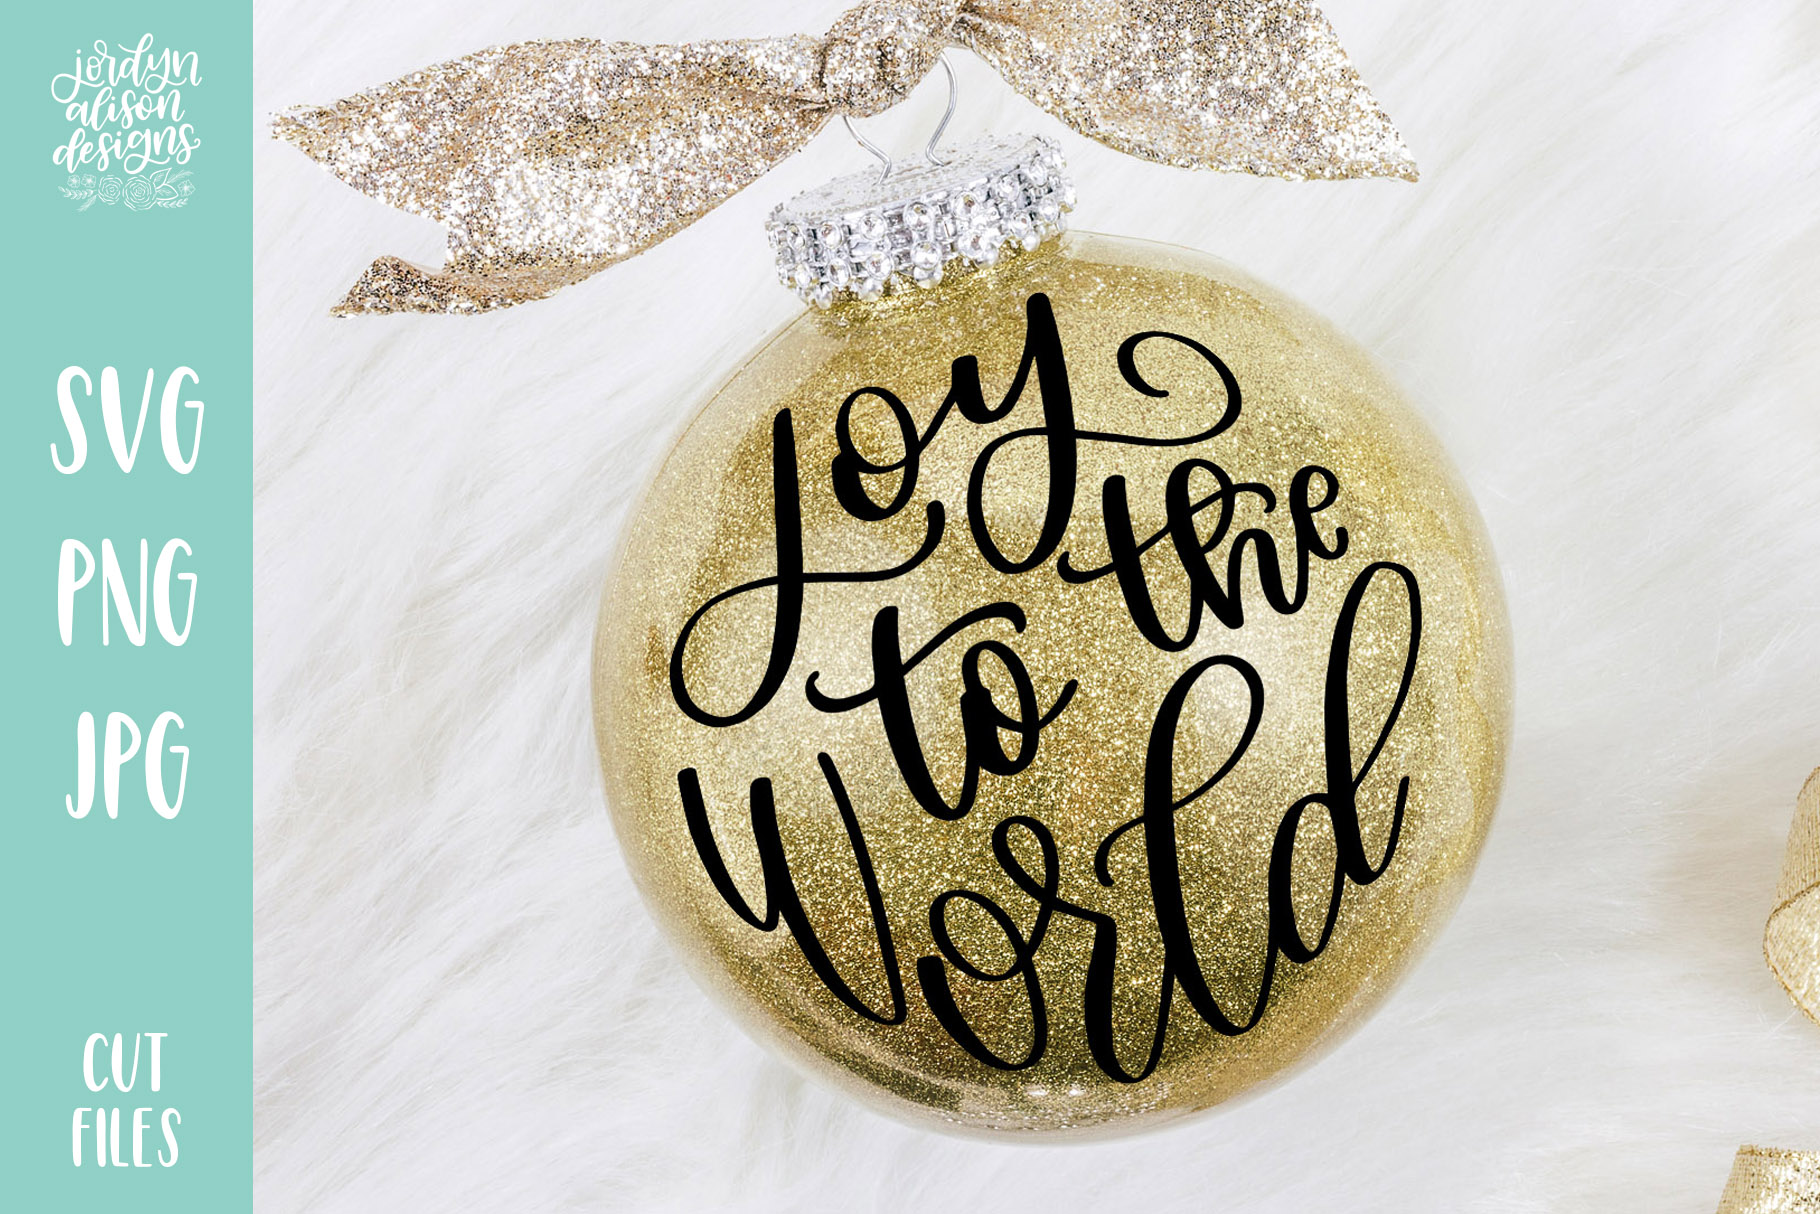 Download Free Joy To The World Round Christmas Graphic By Jordynalisondesigns for Cricut Explore, Silhouette and other cutting machines.